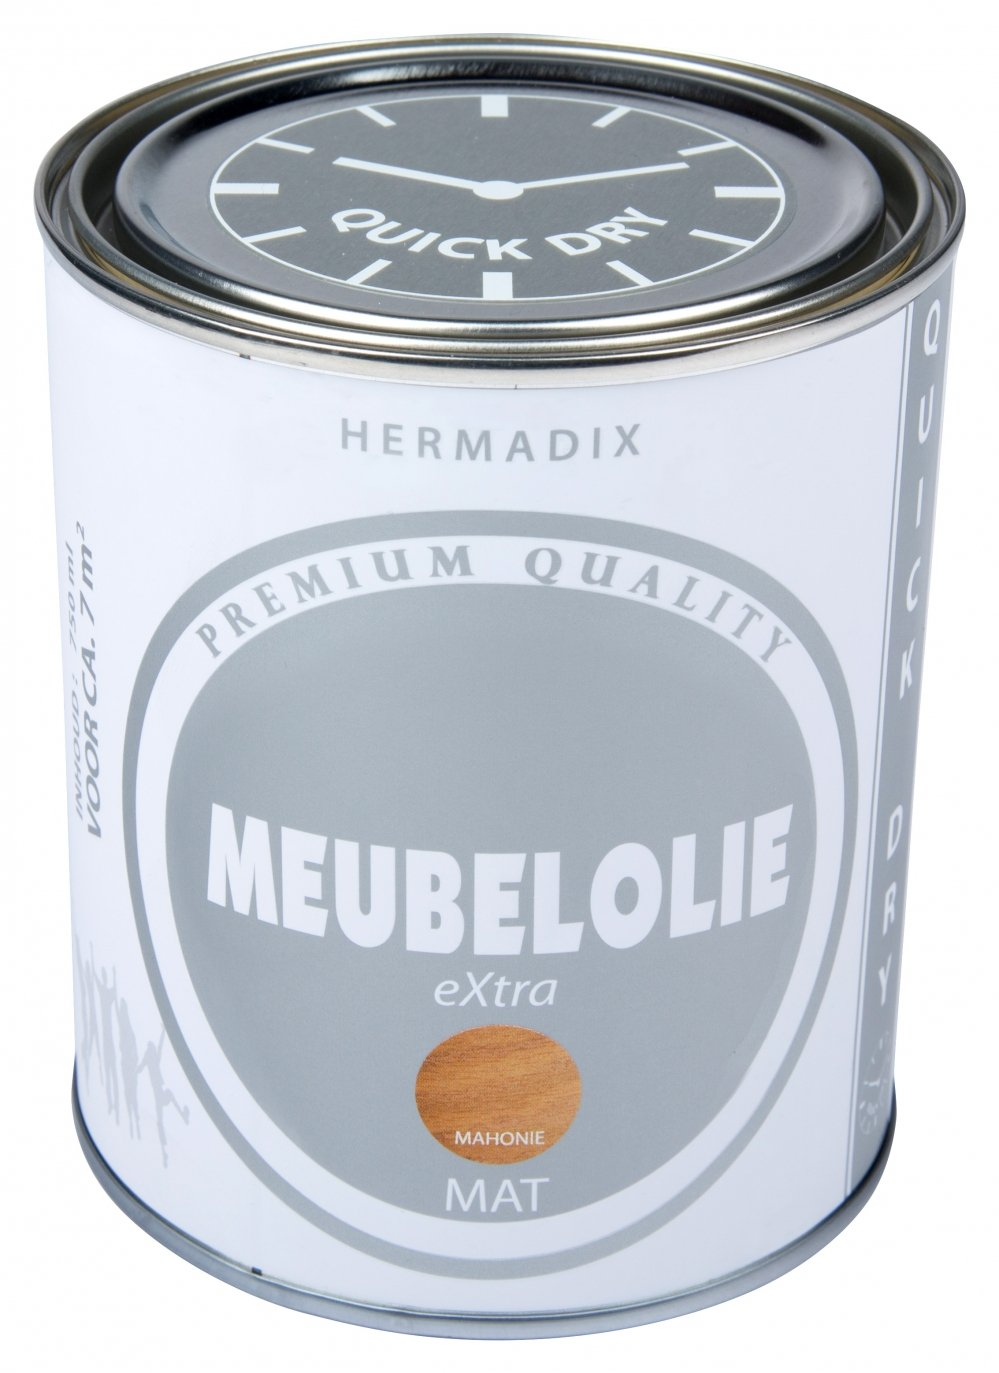 hermadix-meubellolie-extra-mat-mahonie1-verfcompleet.nl